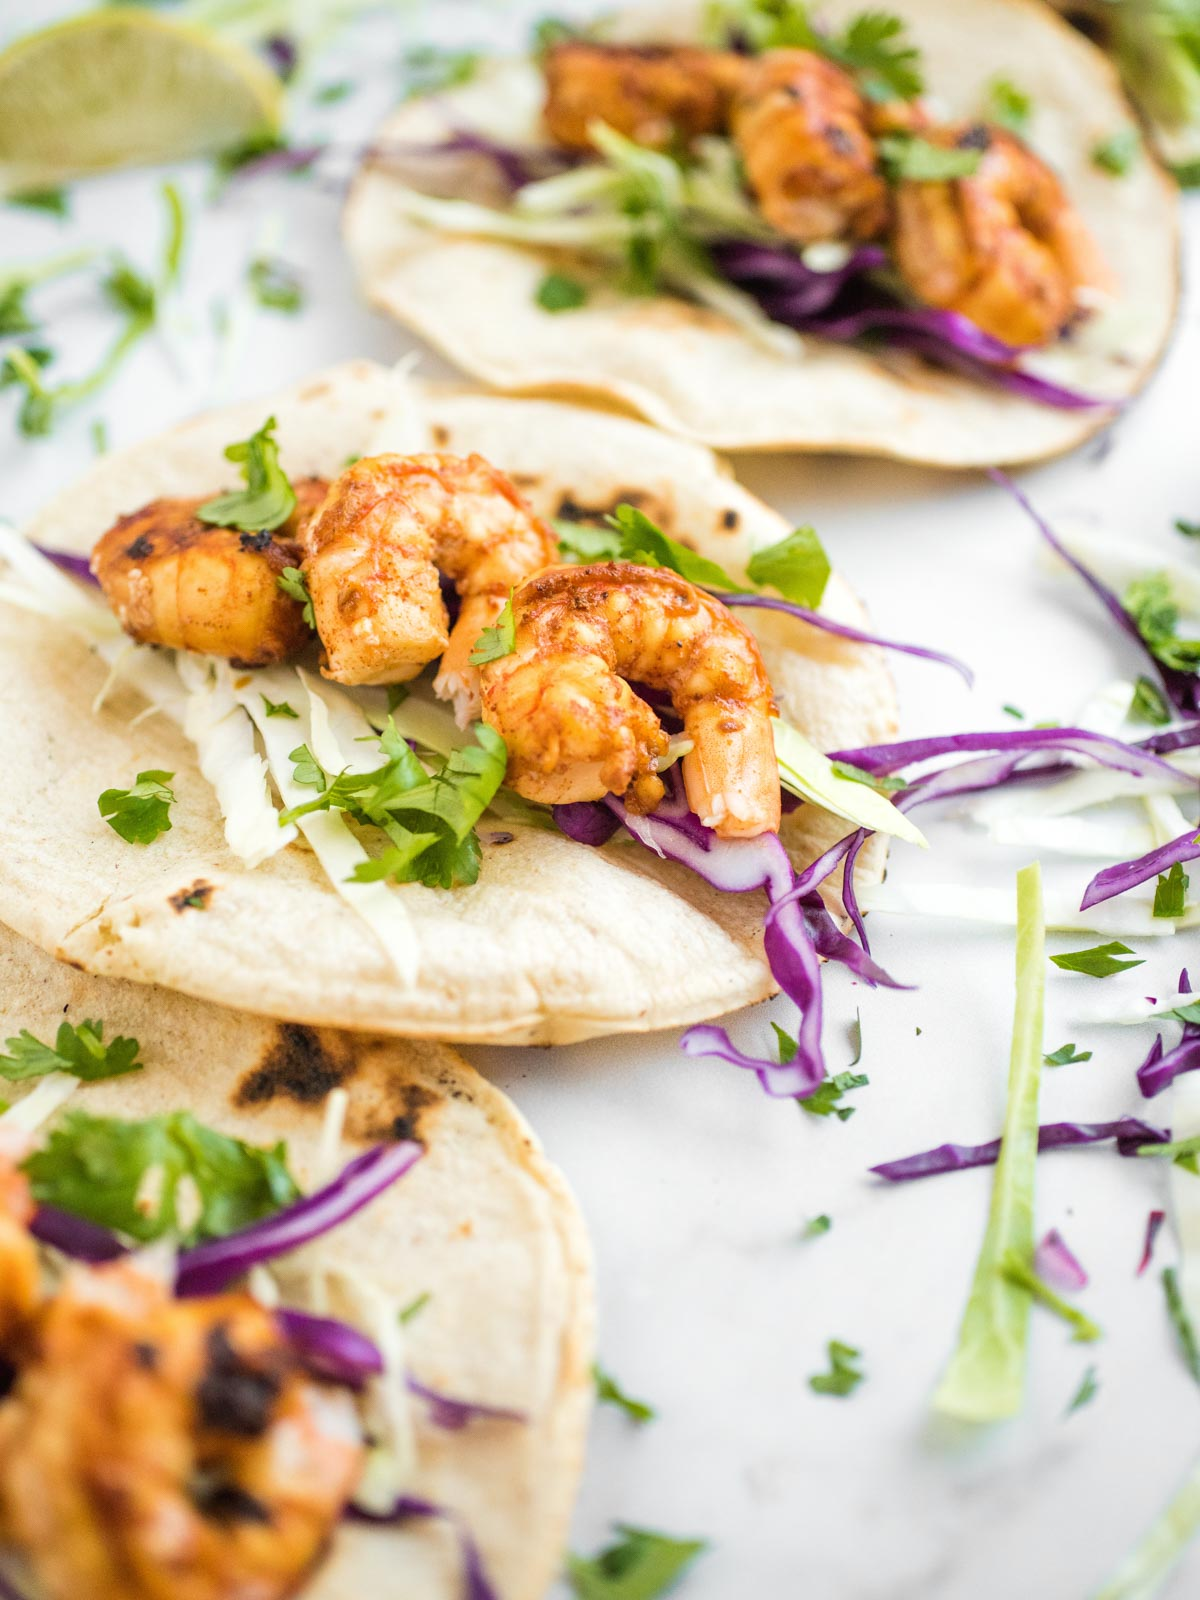 shot of chili lime shrimp tacos opened up